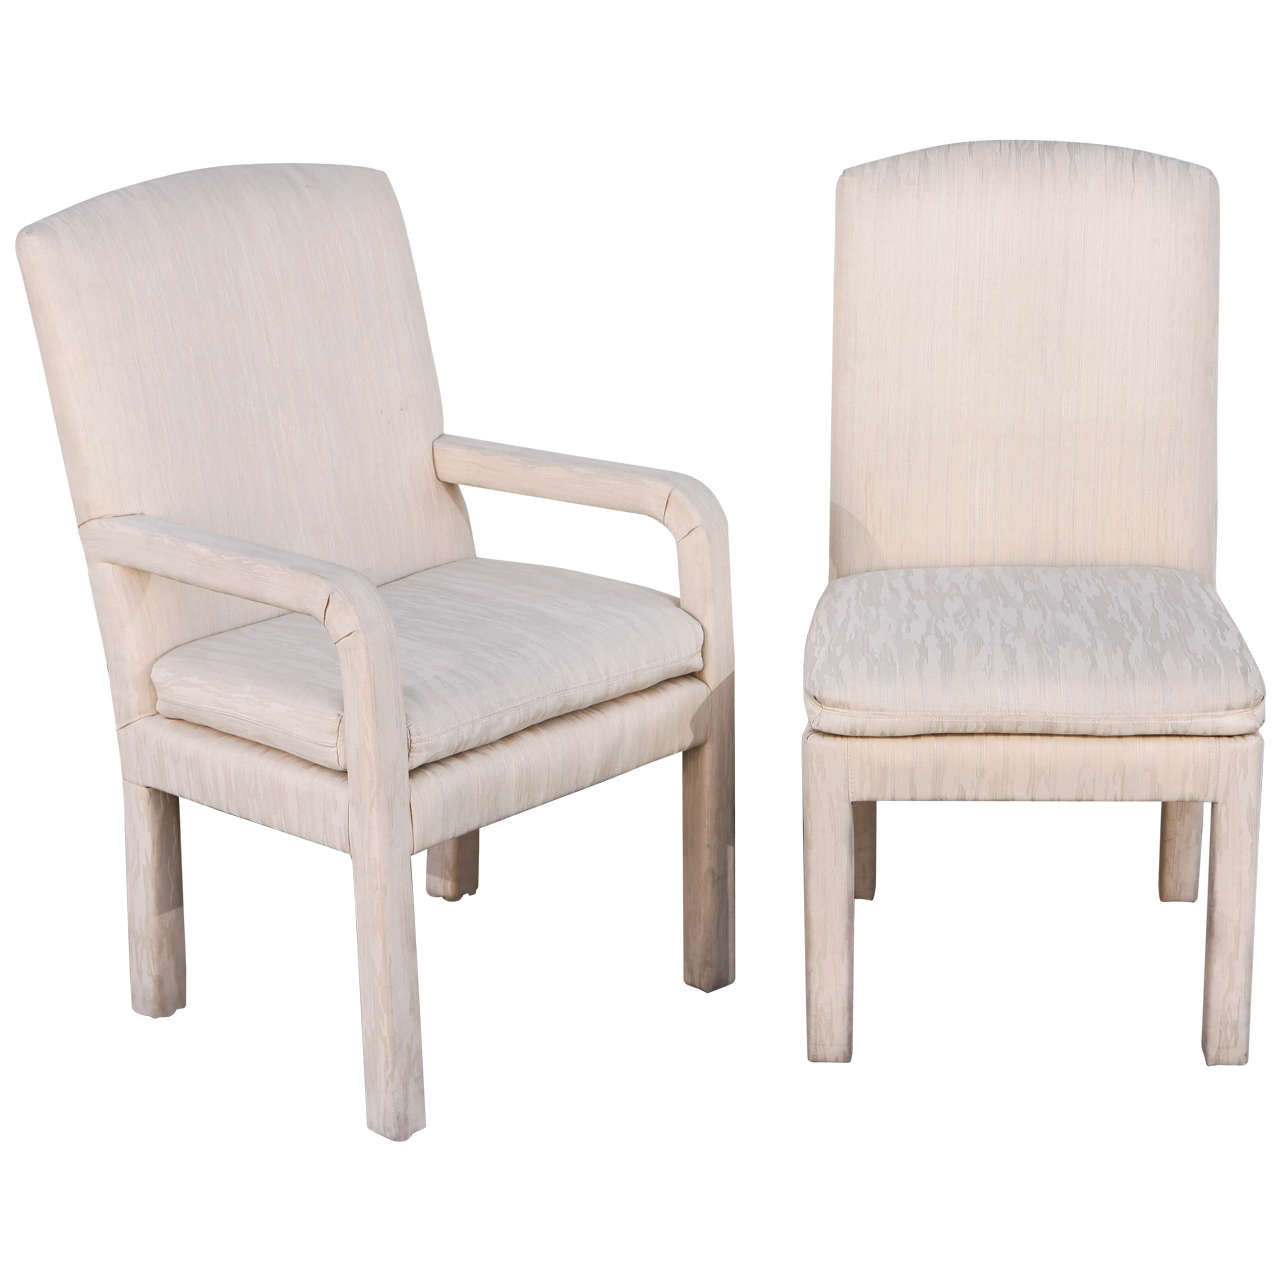 Milo Baughman Arm And Dining Chairs For Sale At 1stdibs